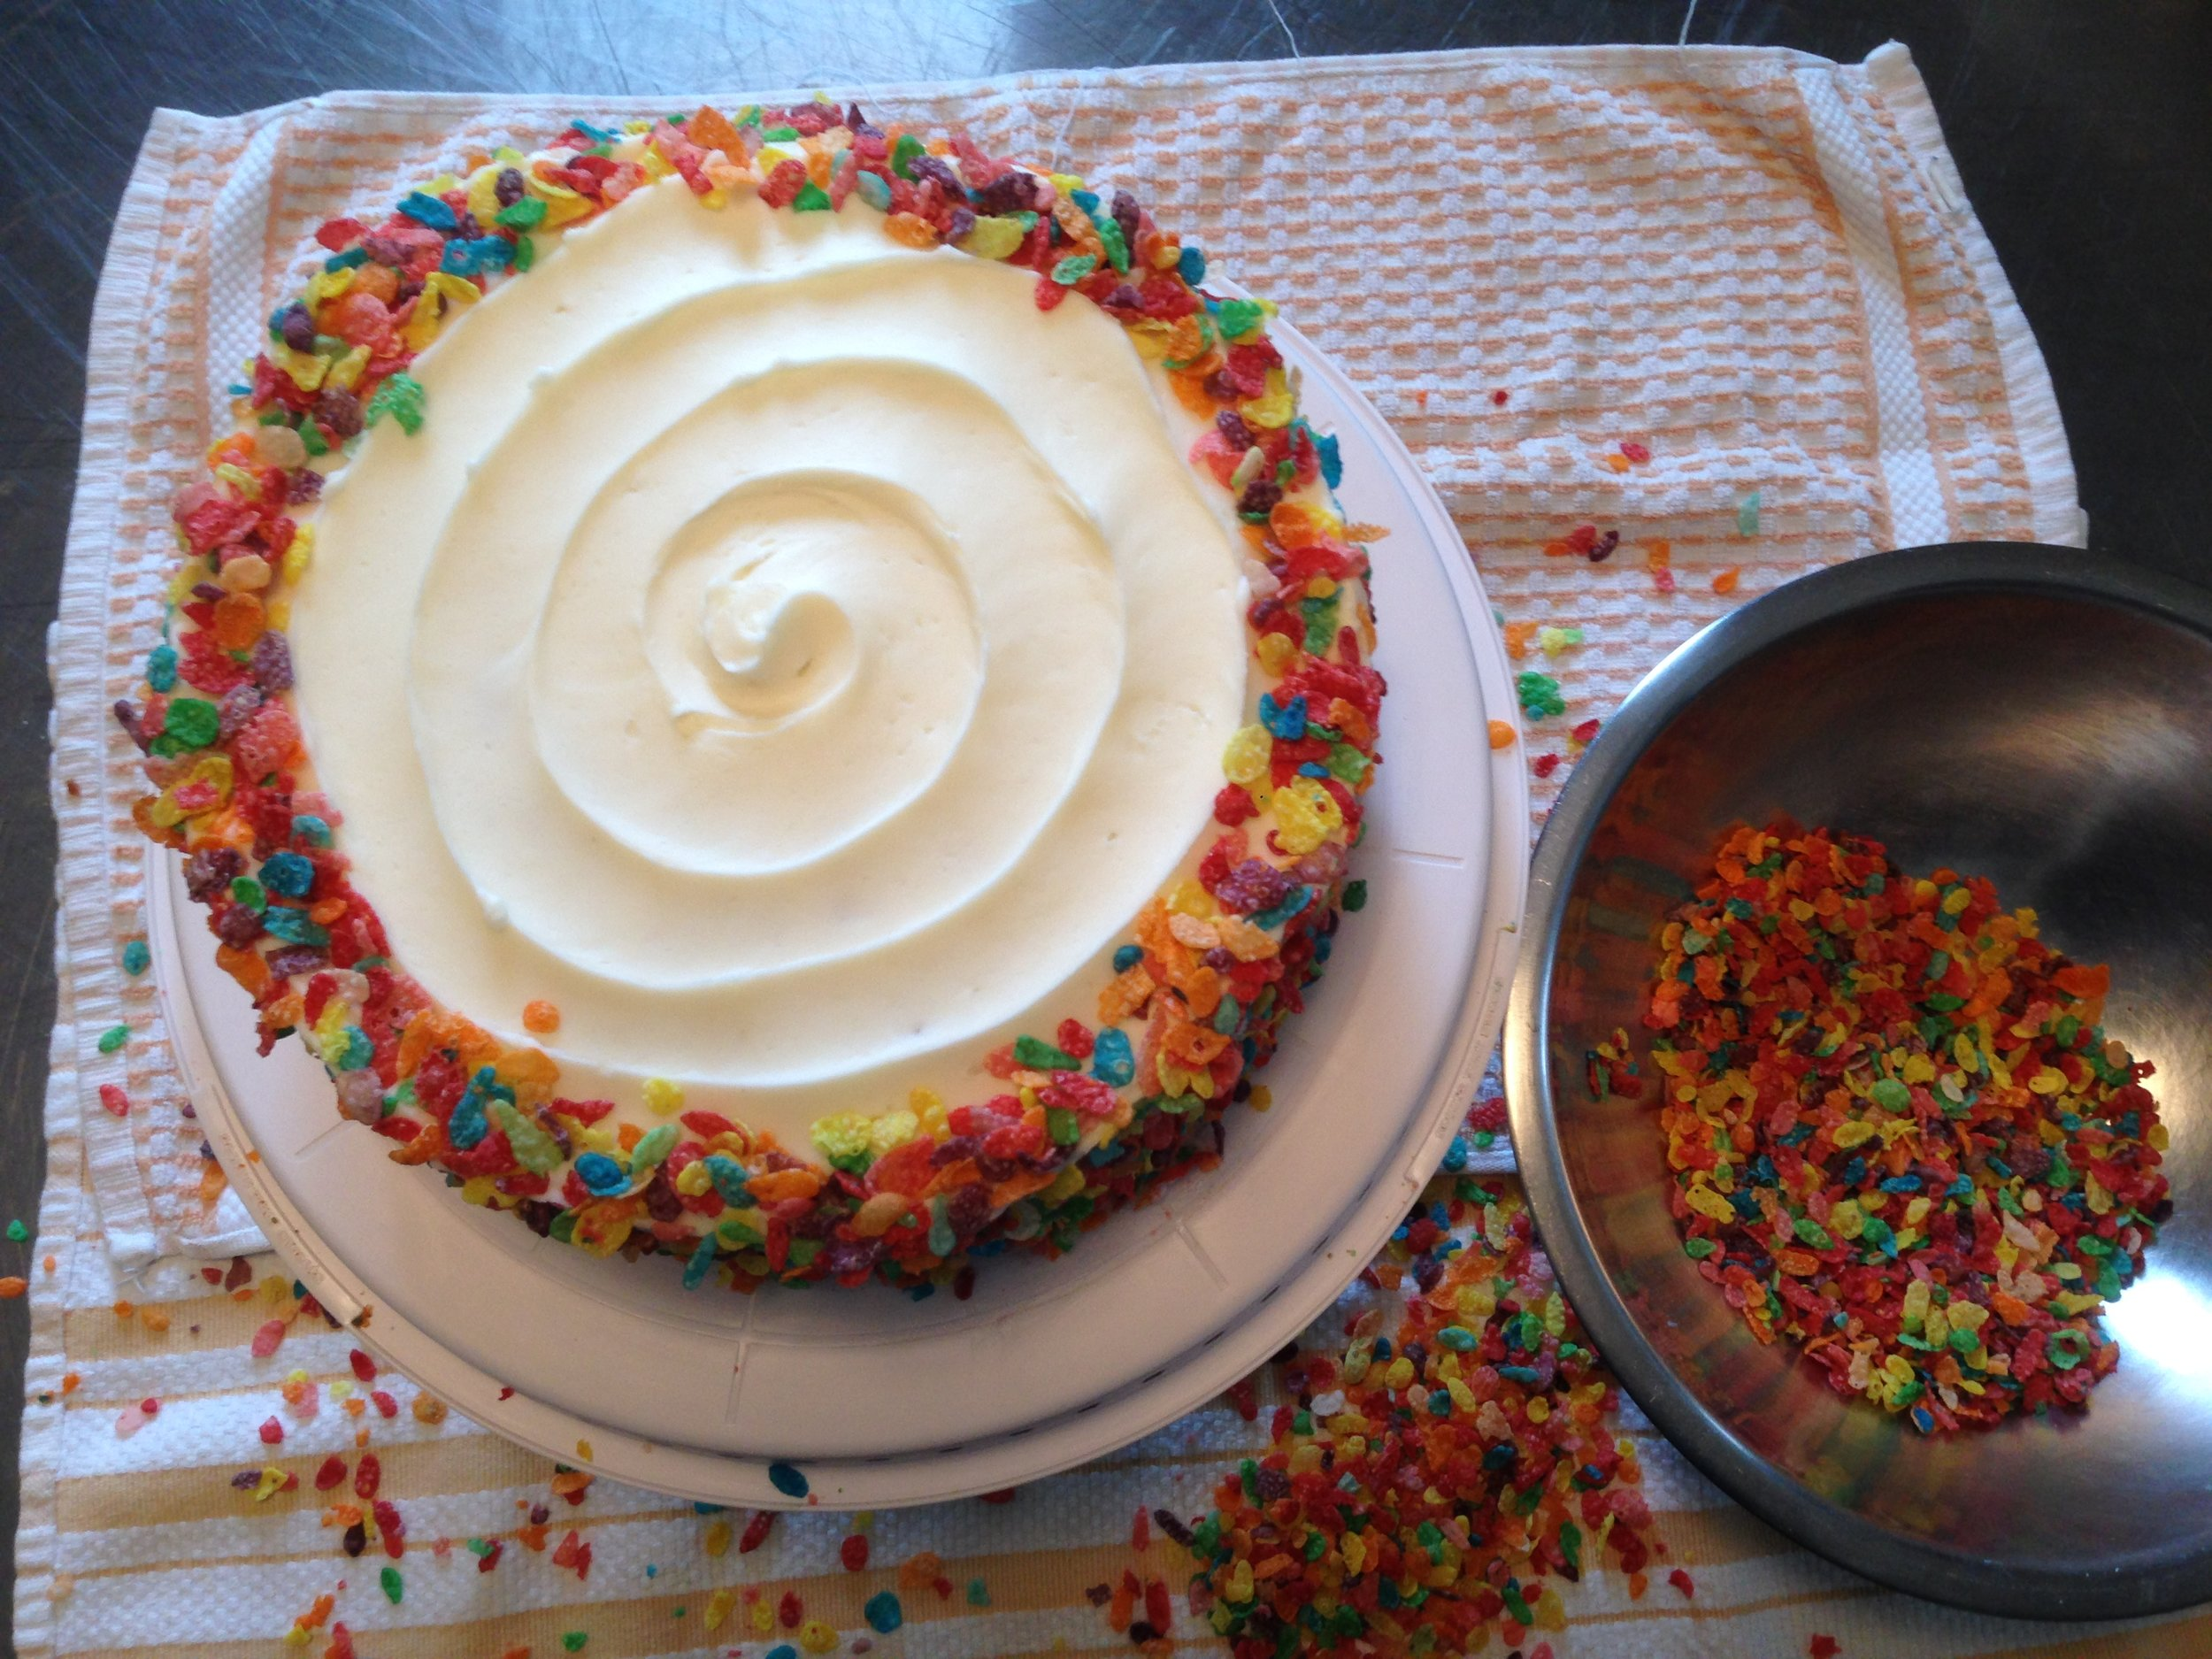 Fruity Pebble Cake cake getting adorned with sugary cereal goodness.